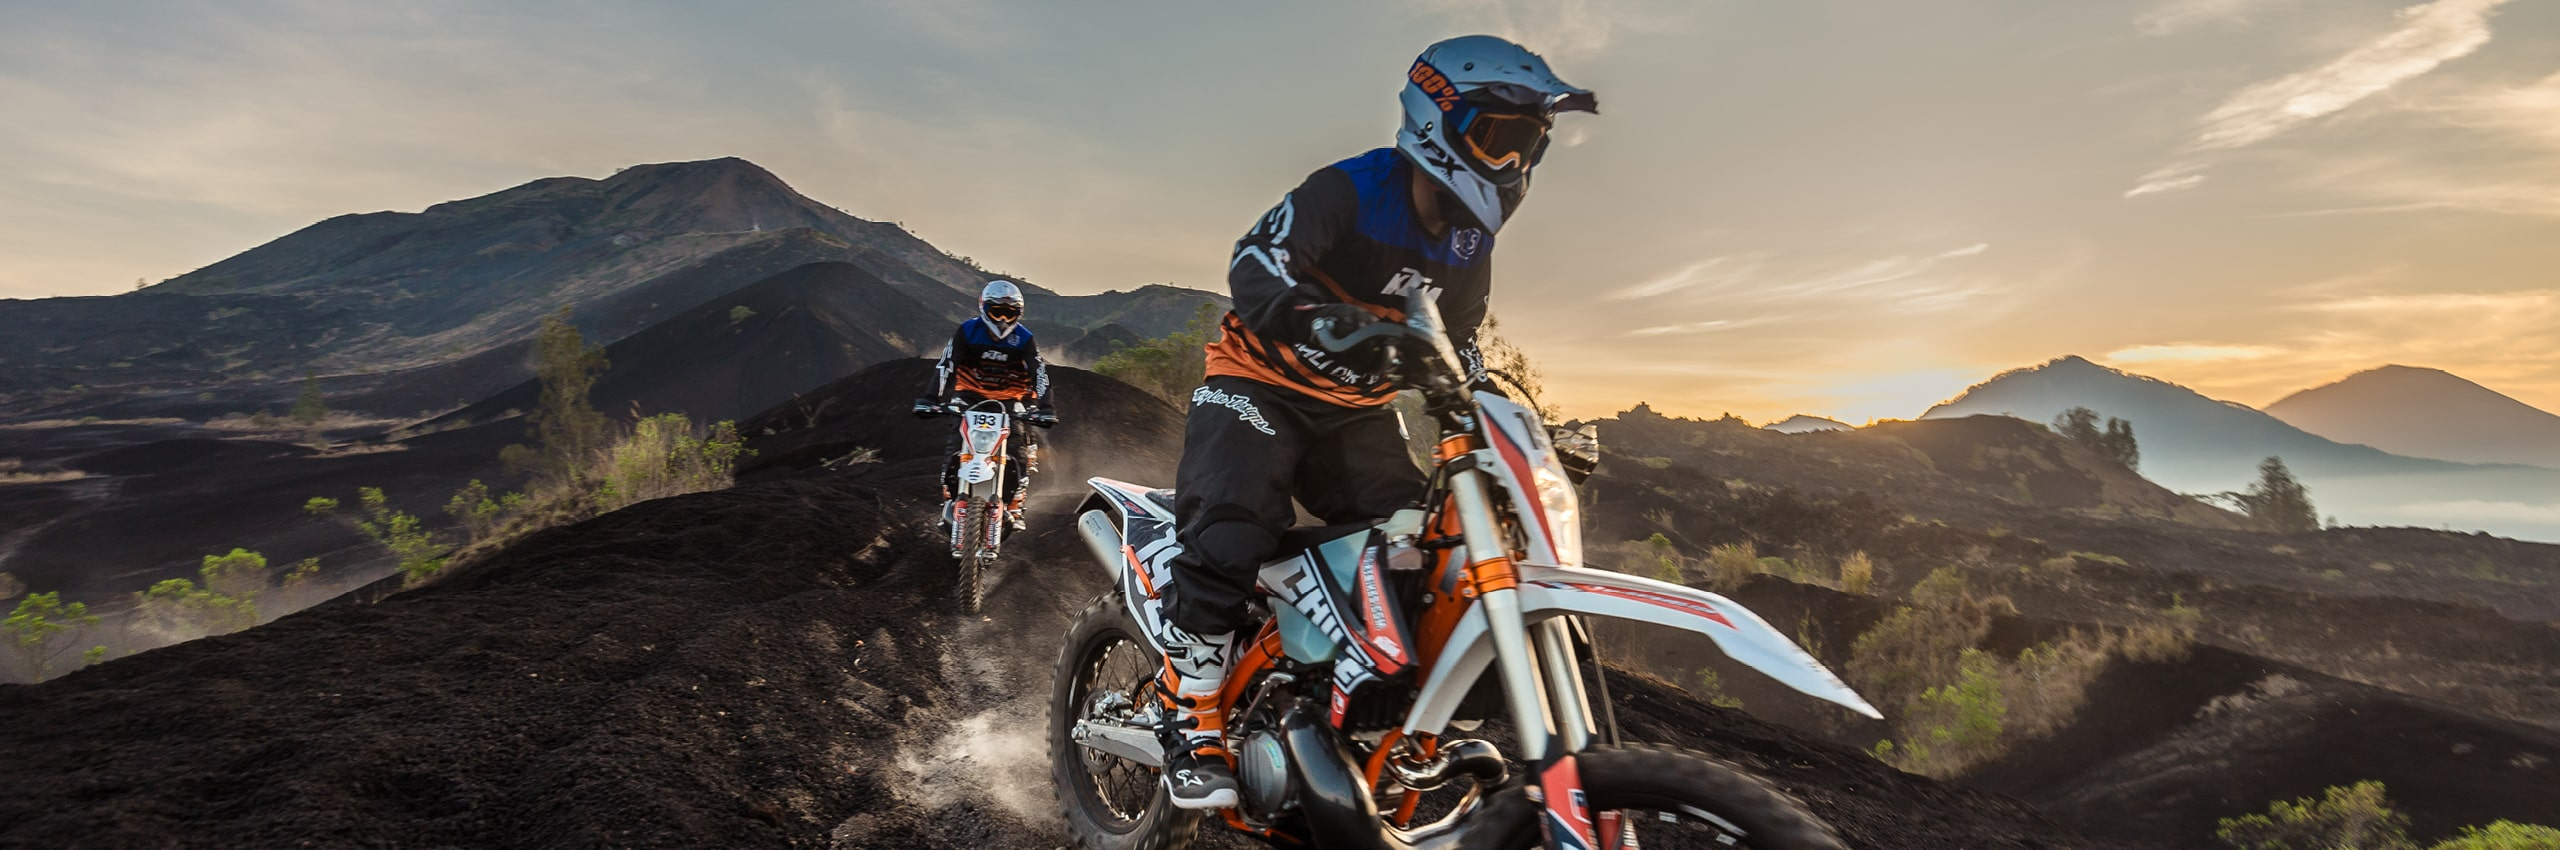 Bali_Dirt_Bikes_Kintamani_Black_Lava_Slider3